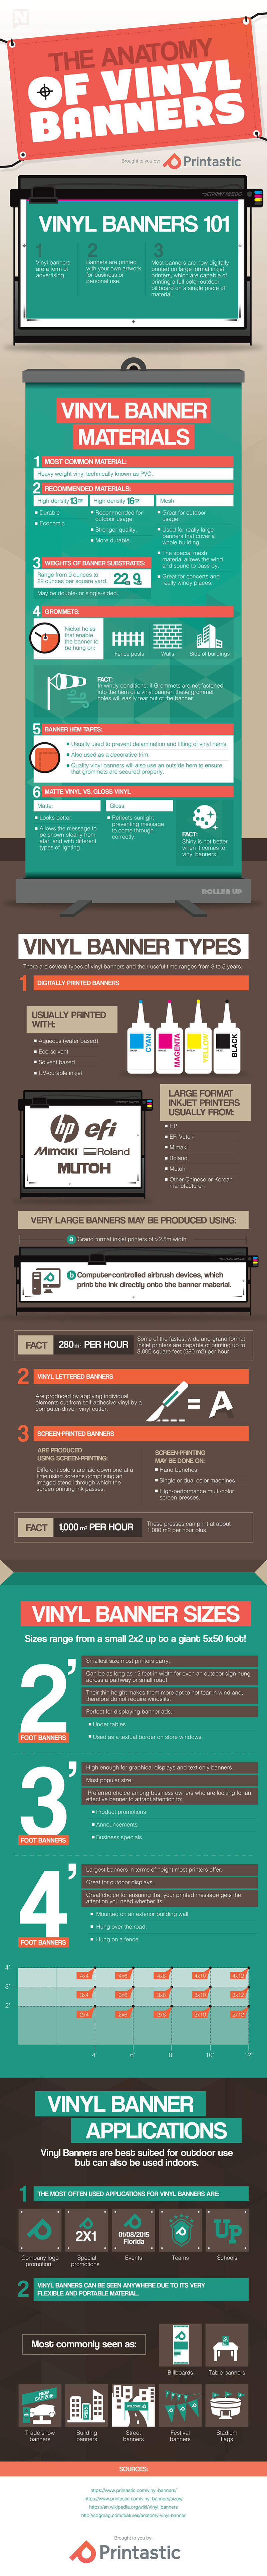 the-anatomy-of-vinyl-banners-infographic